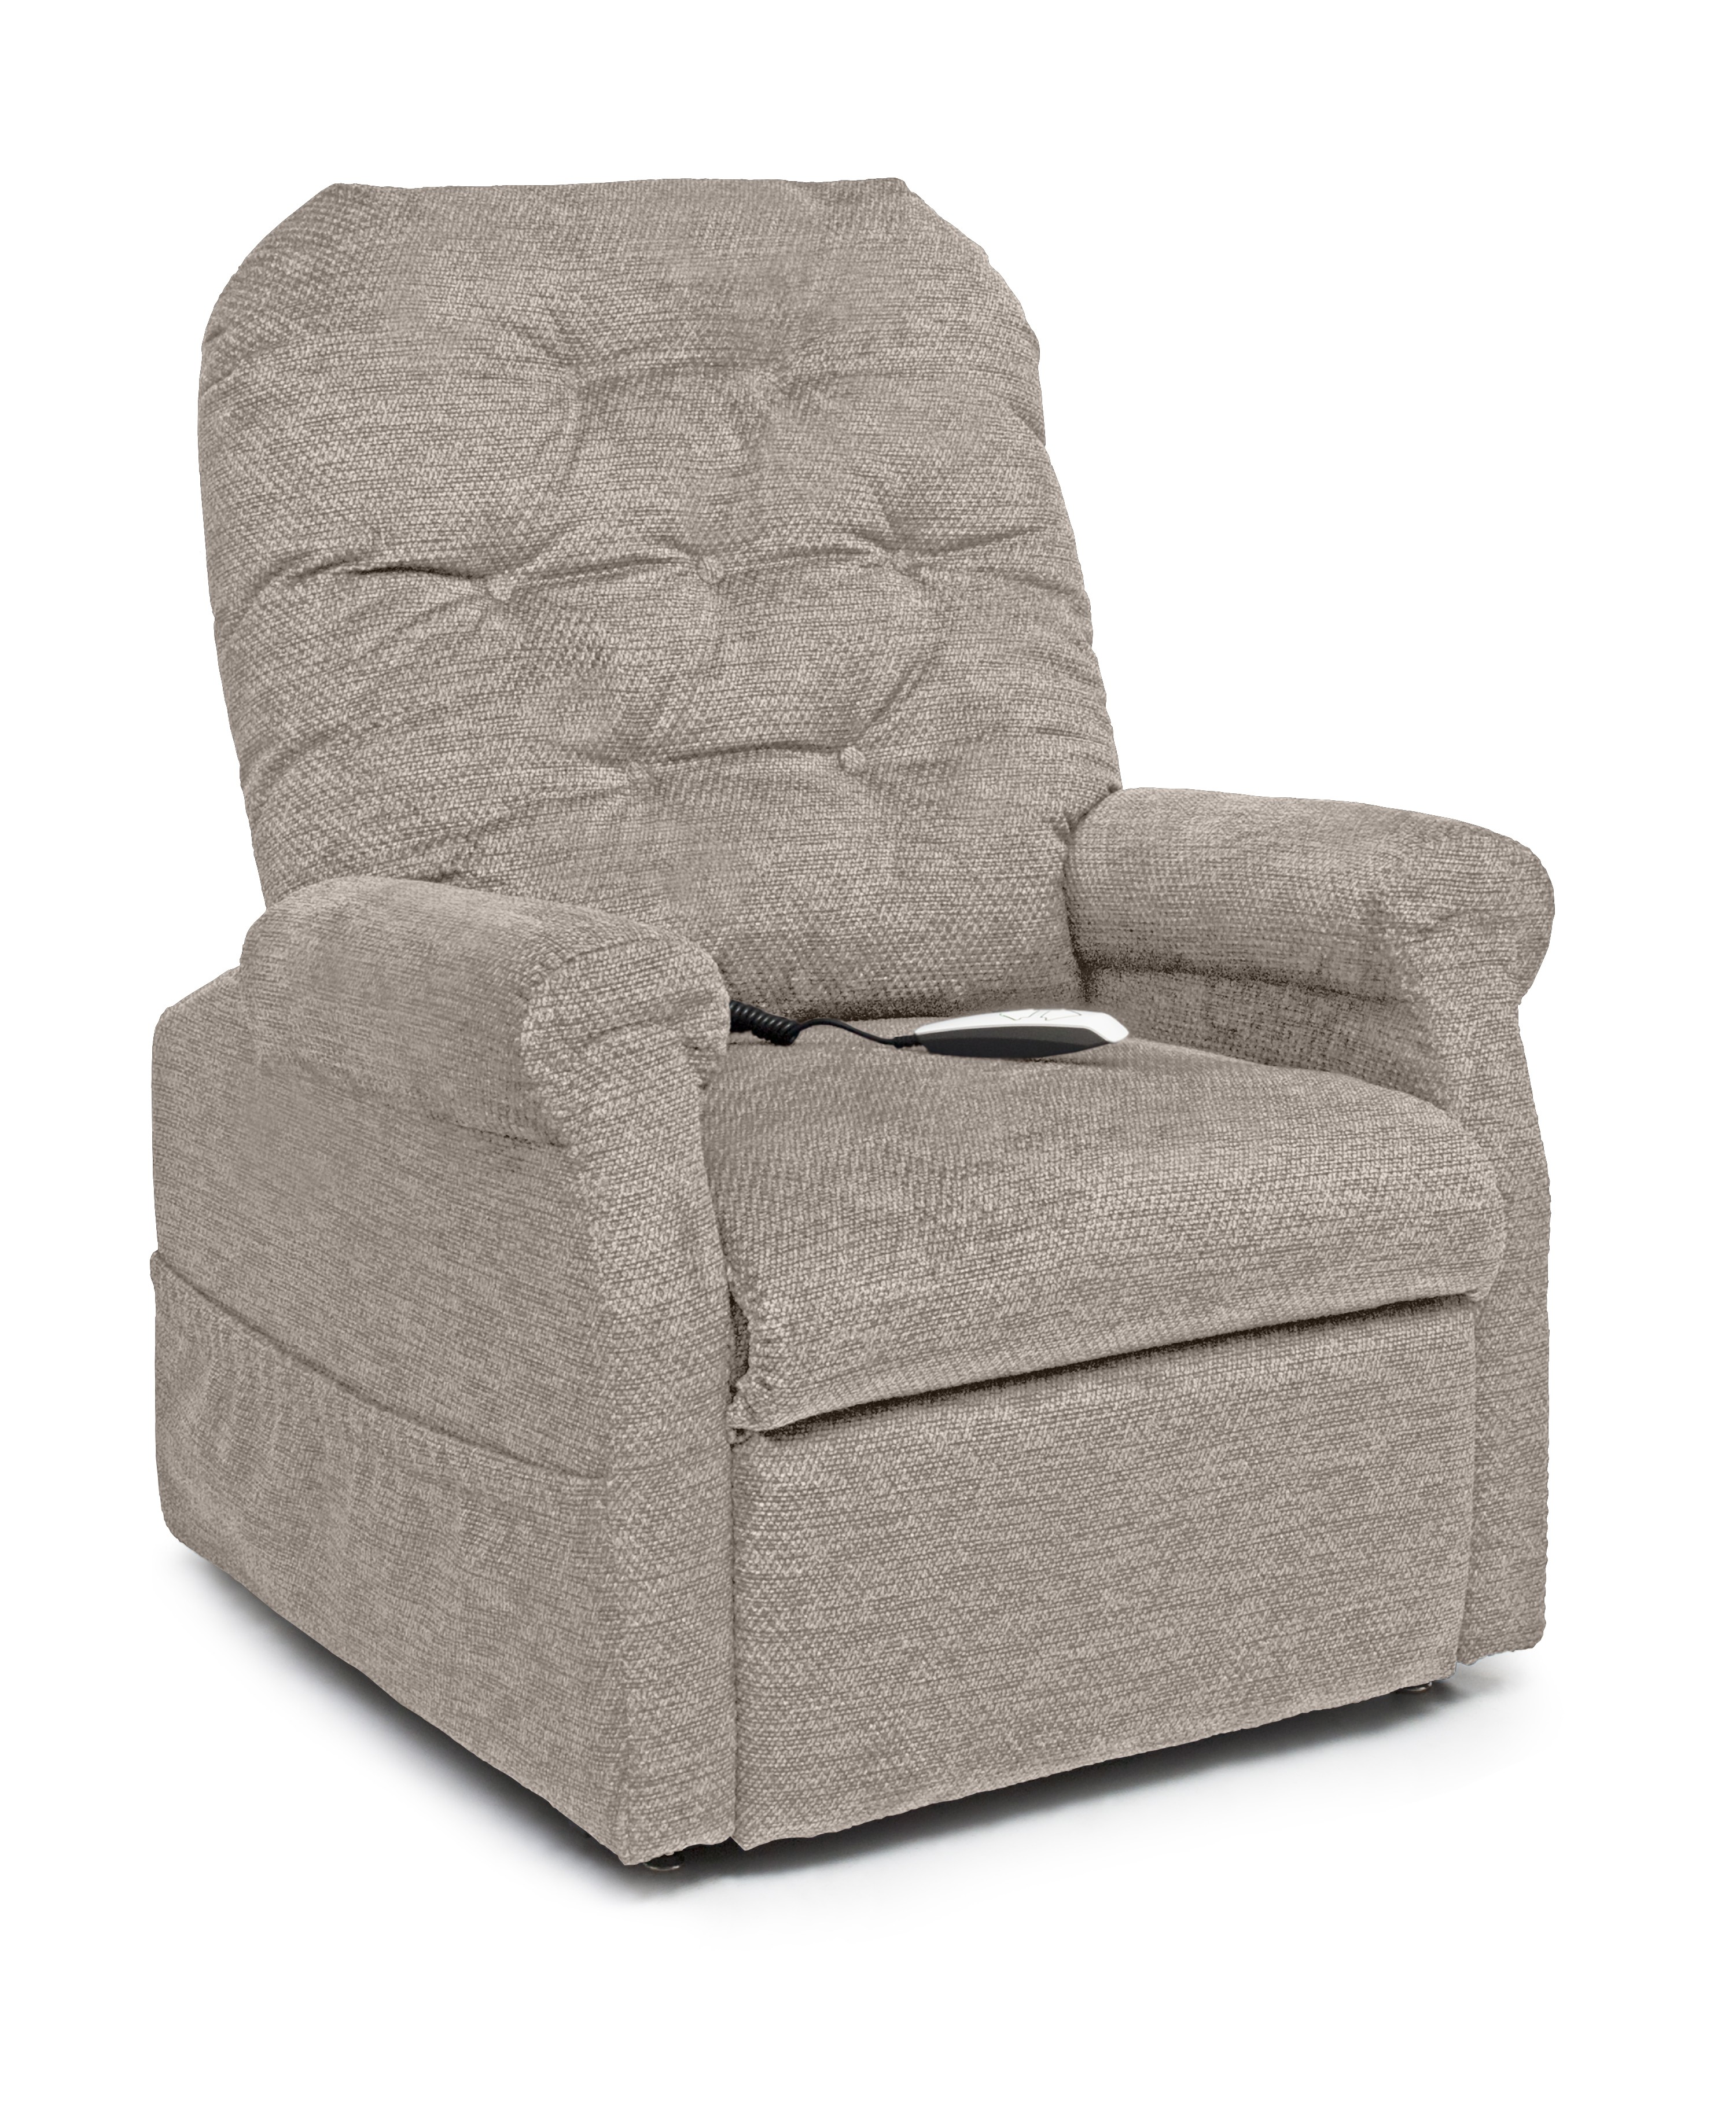 pride lift chairs silver spandex chair covers essential collection button back